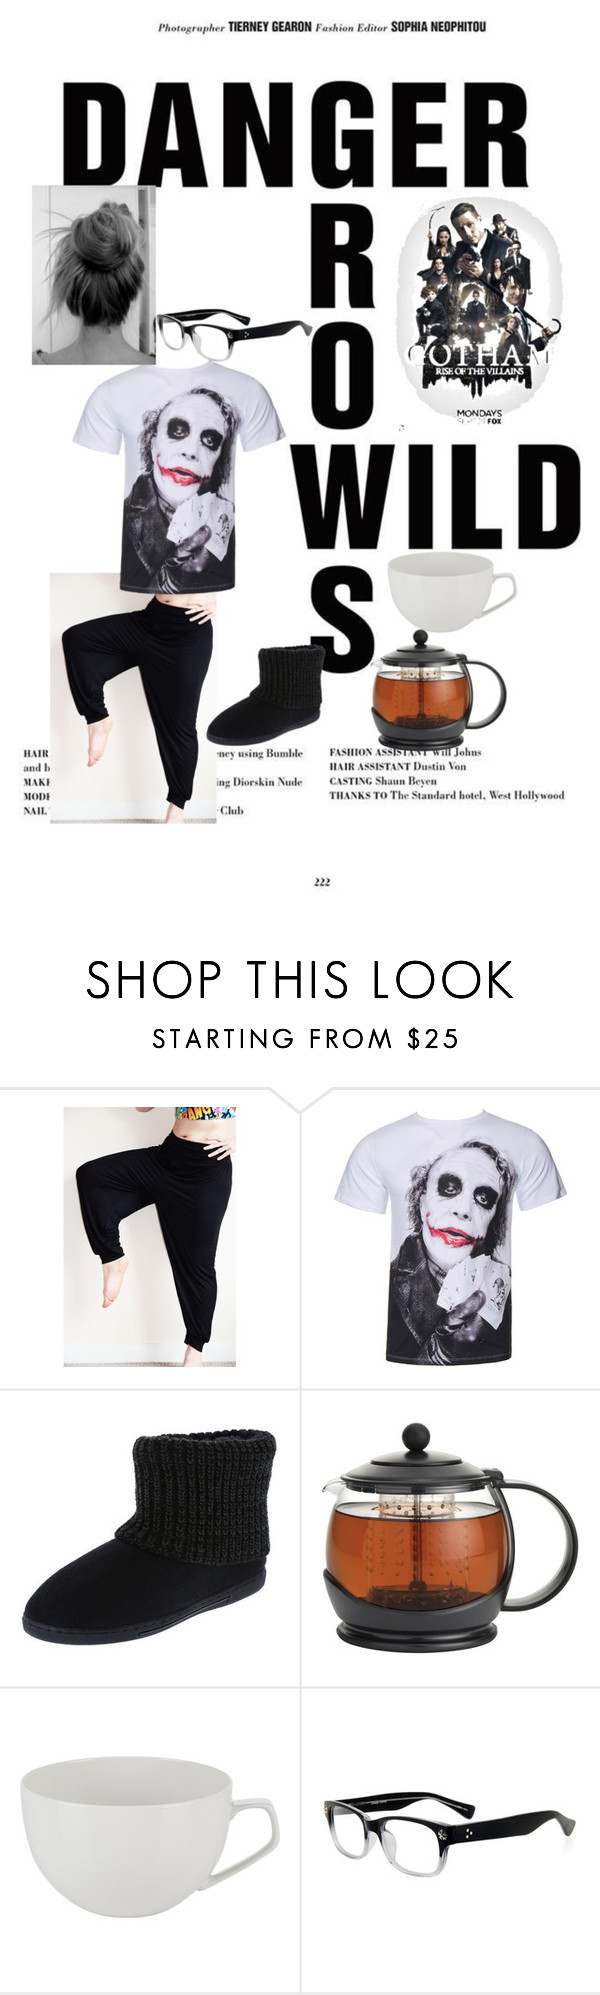 """""""Gotham Season 2 Premiere 9/21/75"""" by kindan3rdy22 ❤ liked on Polyvore featuring BonJour, Rosenthal and GlassesUSA"""